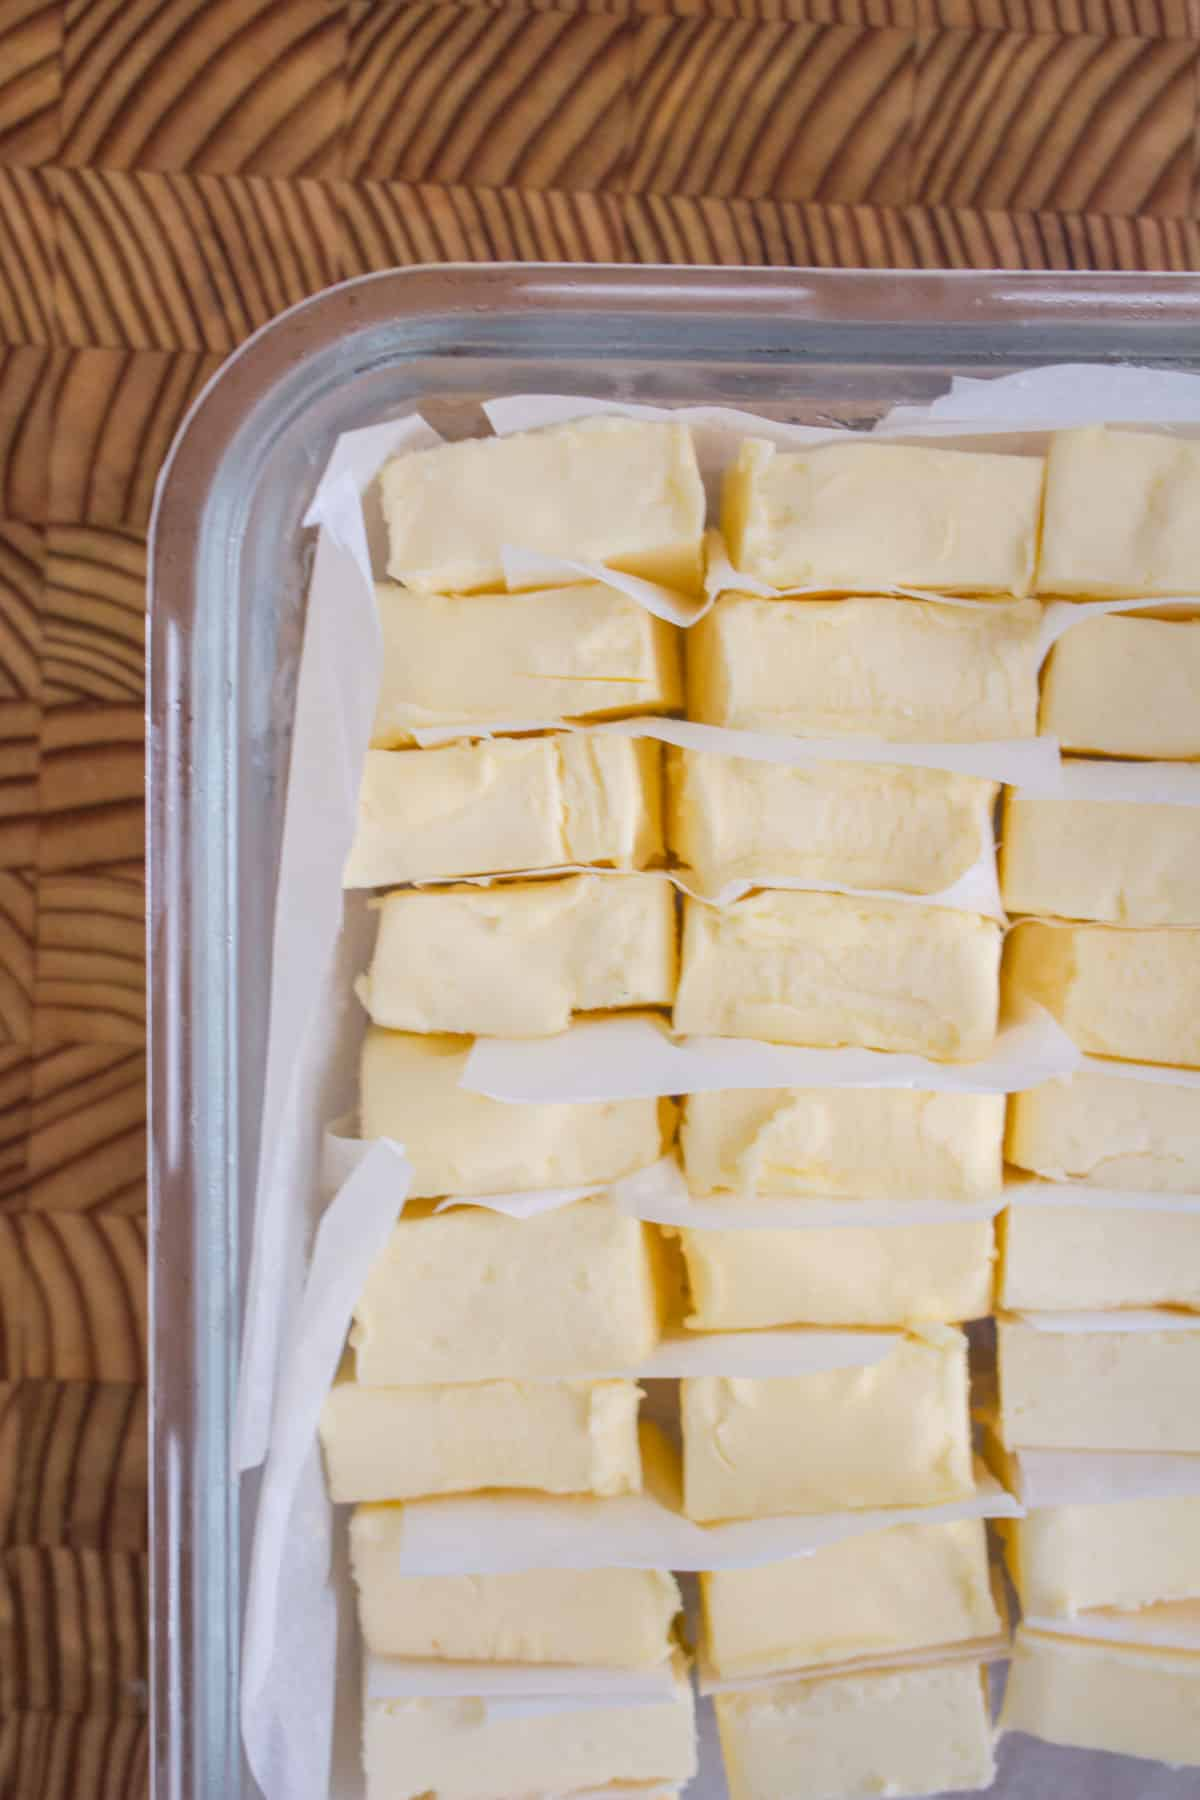 Frozen tablespoons of butter in a glass container.